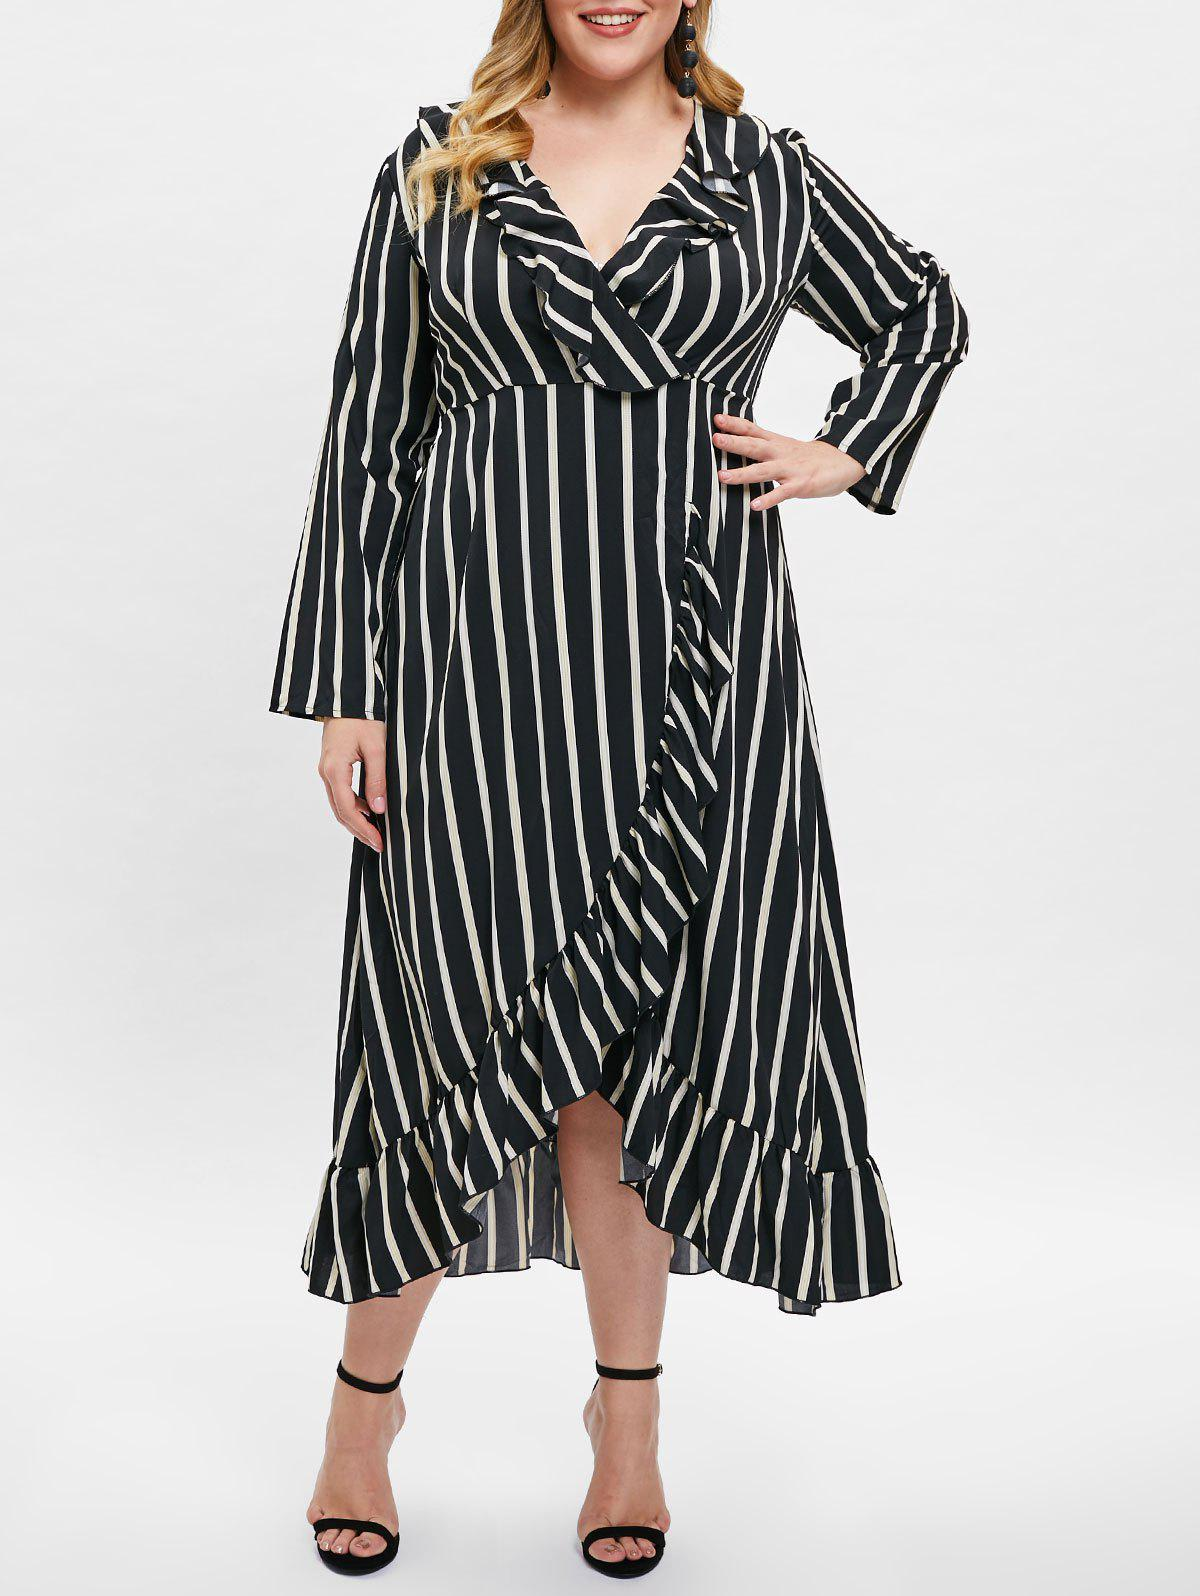 Plunge Plus Size Asymmetrical Striped Dress